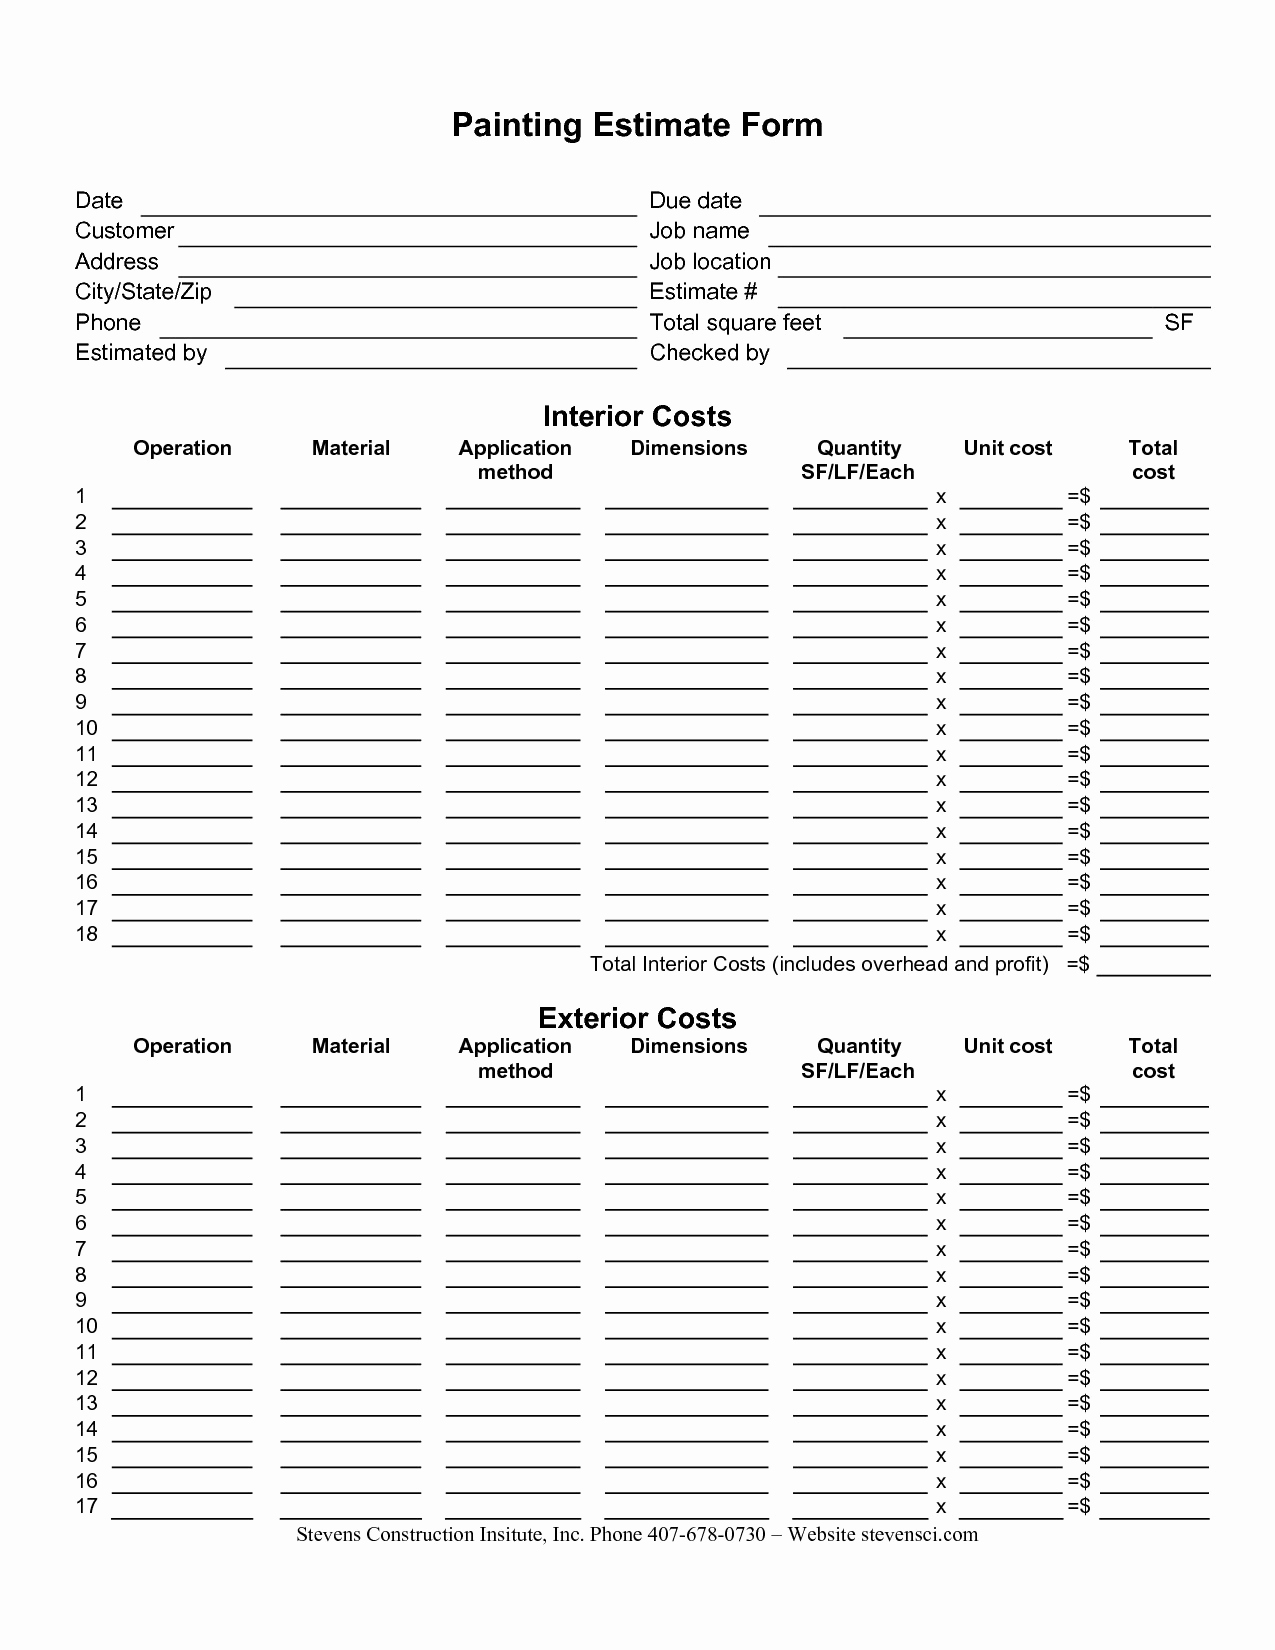 Free Printable Estimate forms Awesome Painting Estimate form Sample